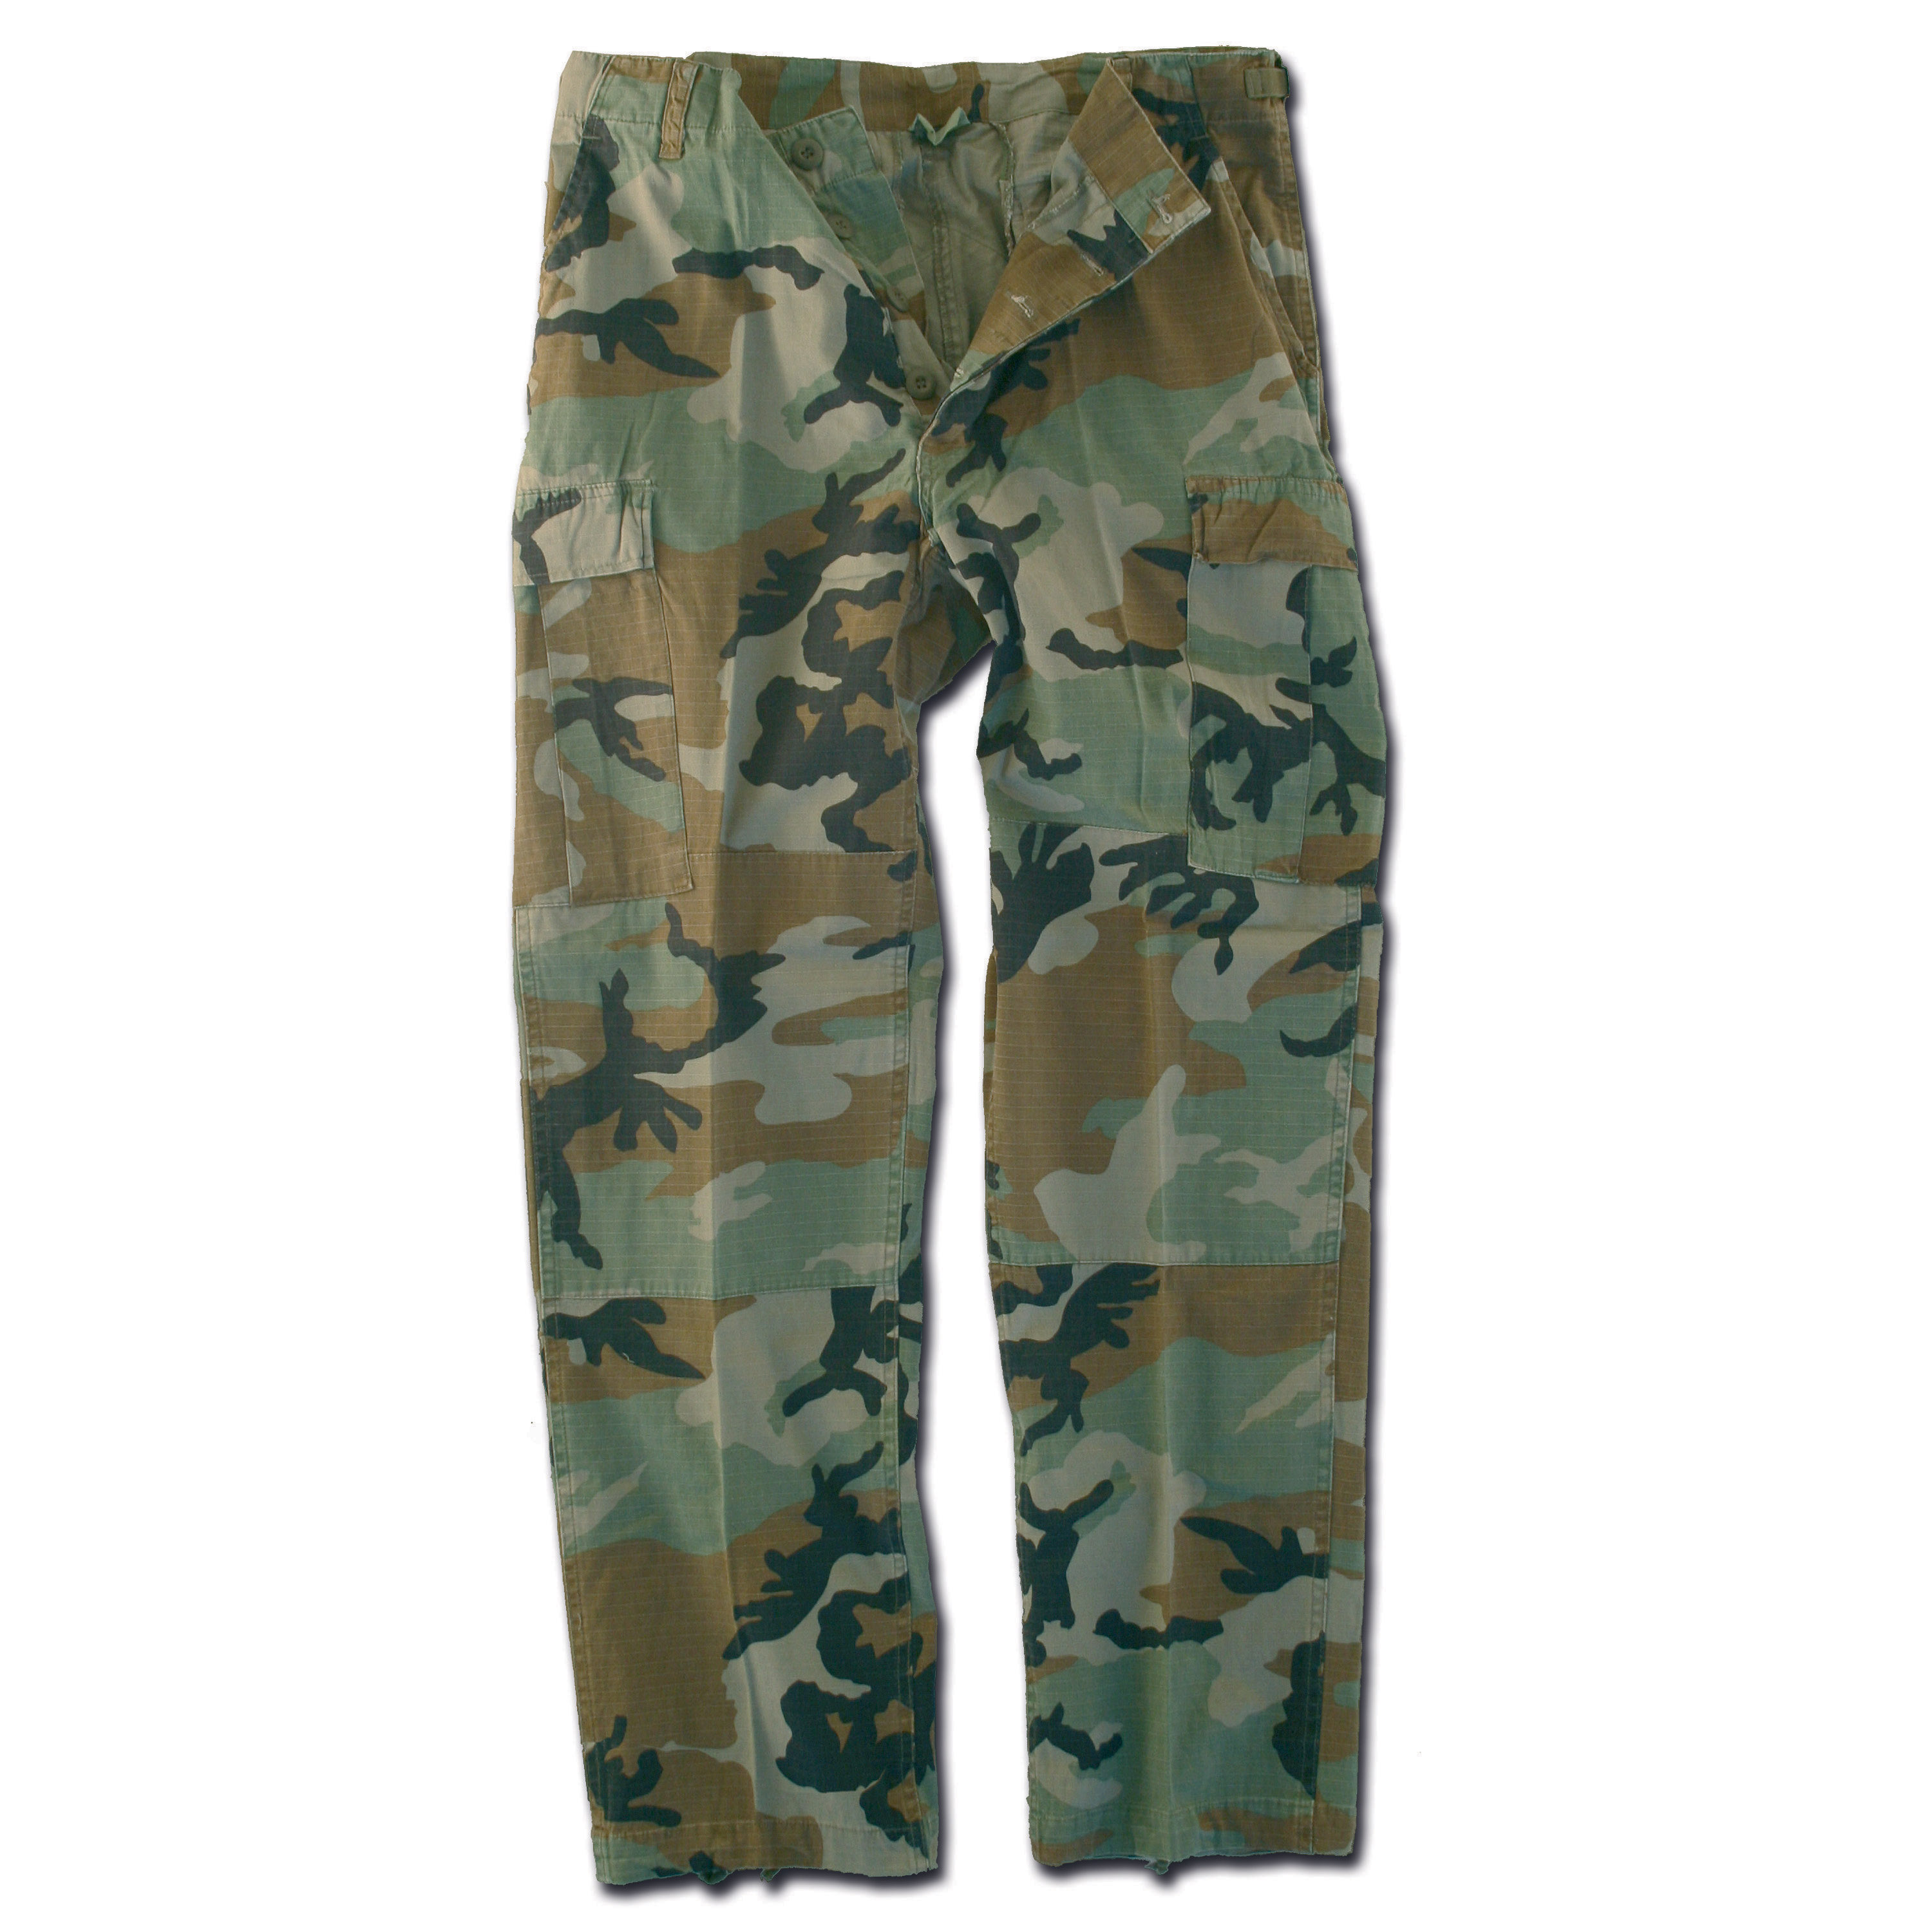 Hose BDU Style woodland Ripstop washed